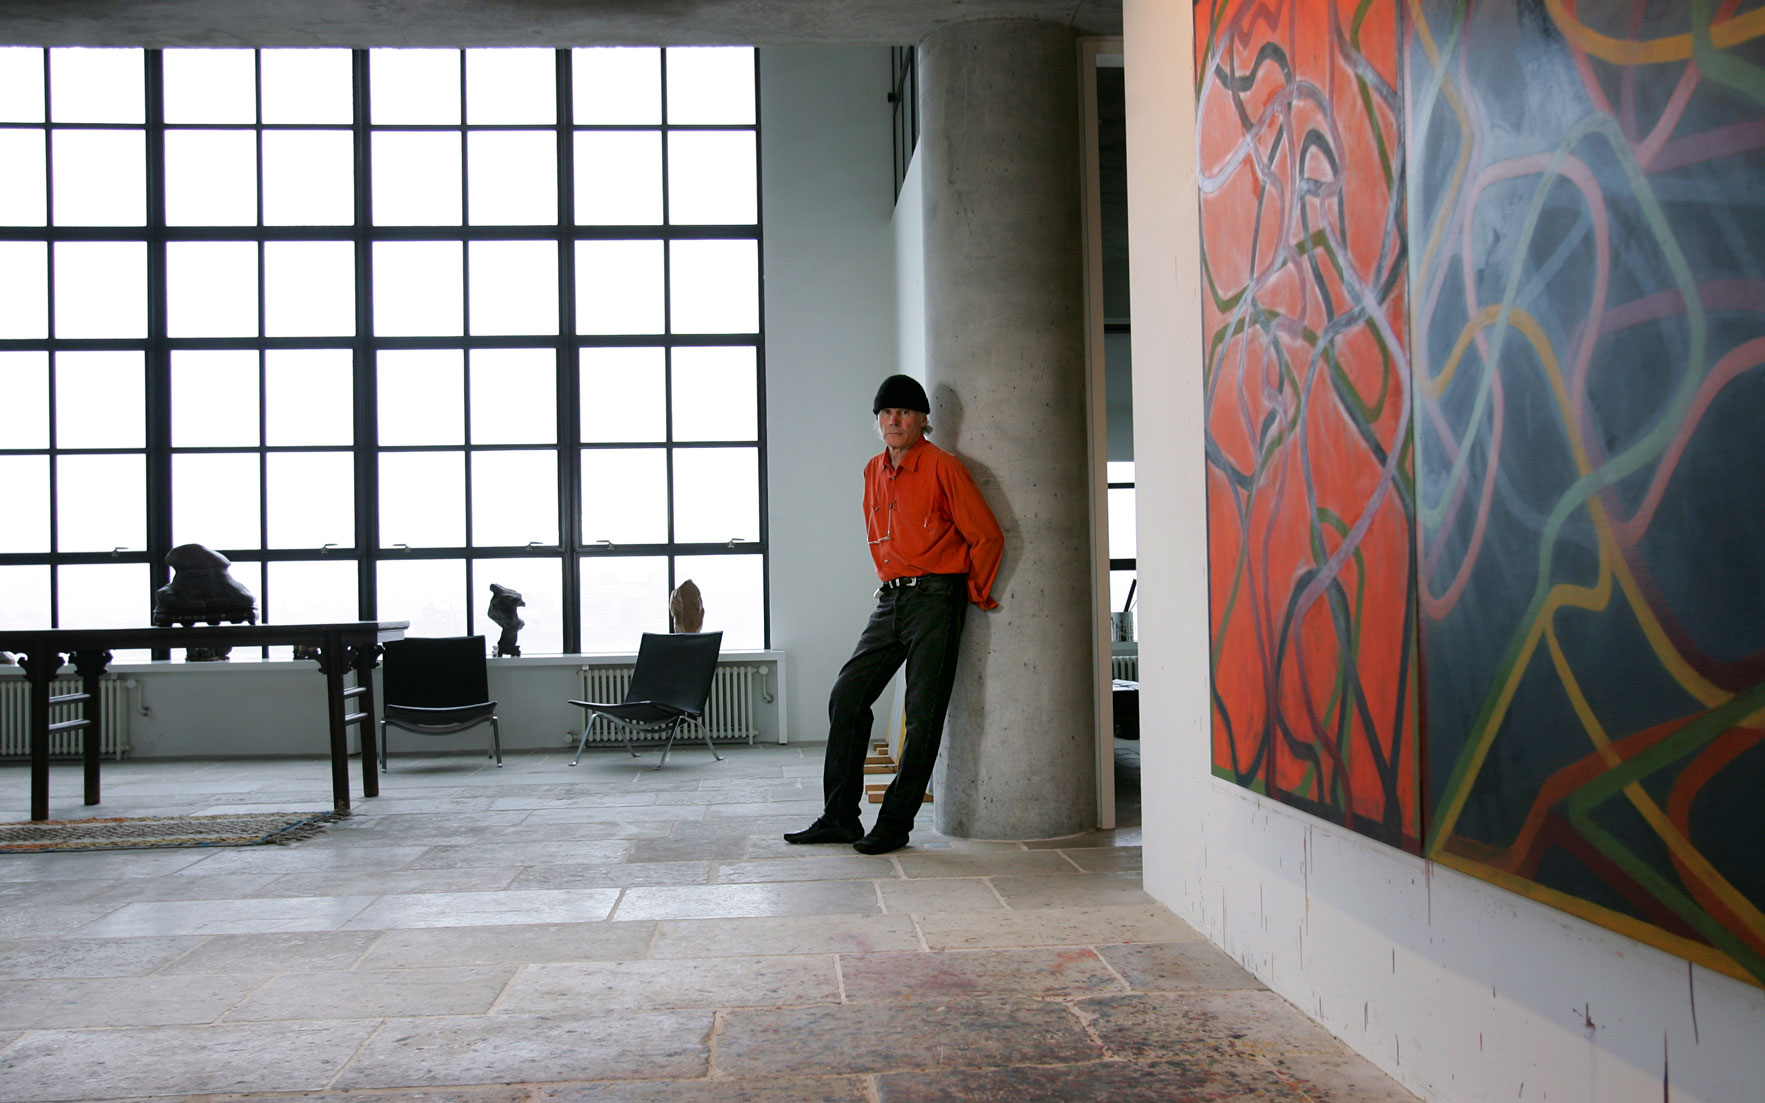 Brice Marden in his New York studio, 2006, with Complements, 2004-2007. Photo Tony Cenicola  The New York Times  Redux  ​eyevine. Artwork © Brice Marden  DACS 2020